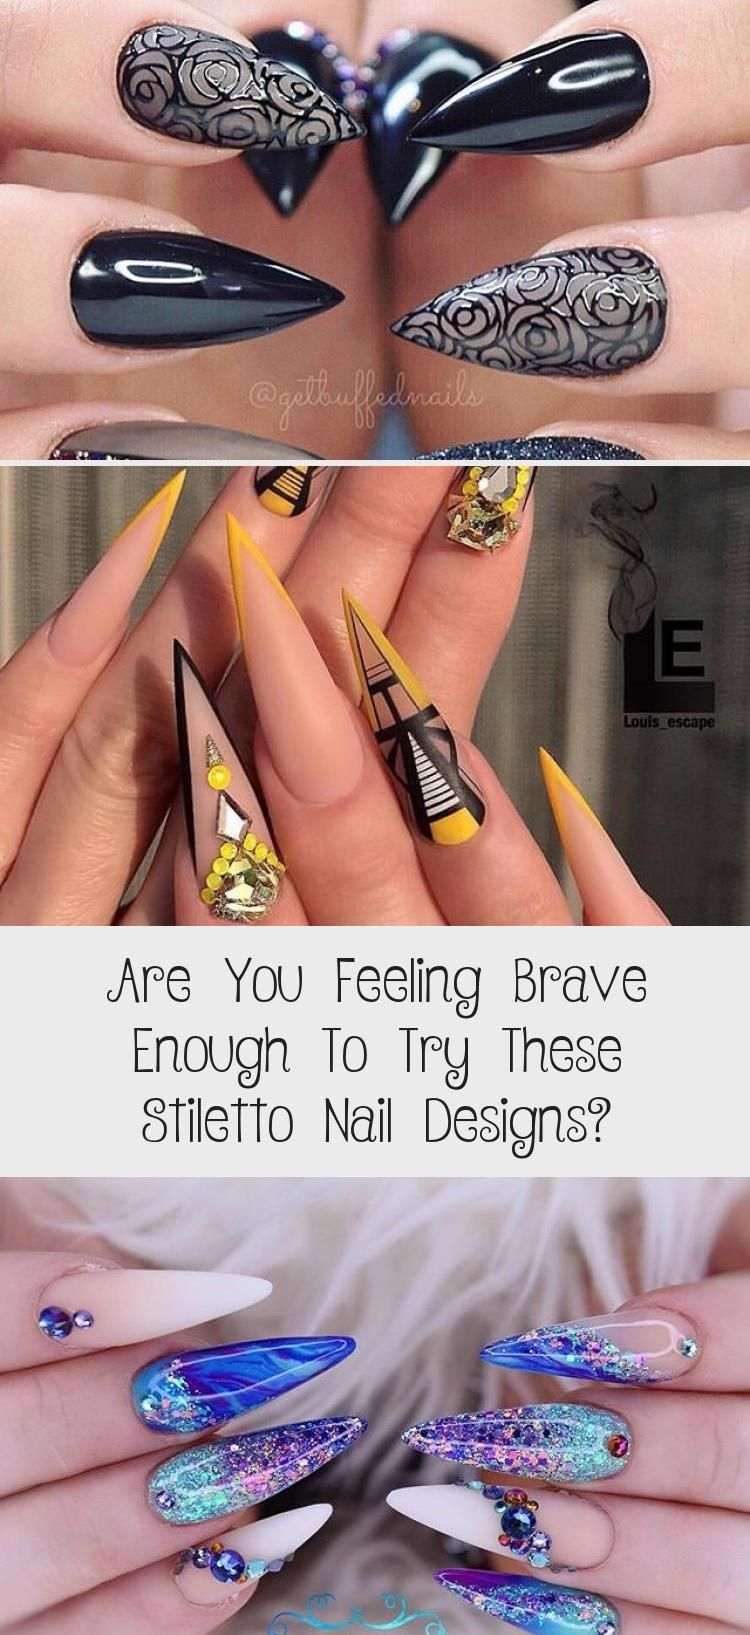 Photo of Are You Feeling Brave Enough To Try These Stiletto Nail Designs? – Nail Art Desing